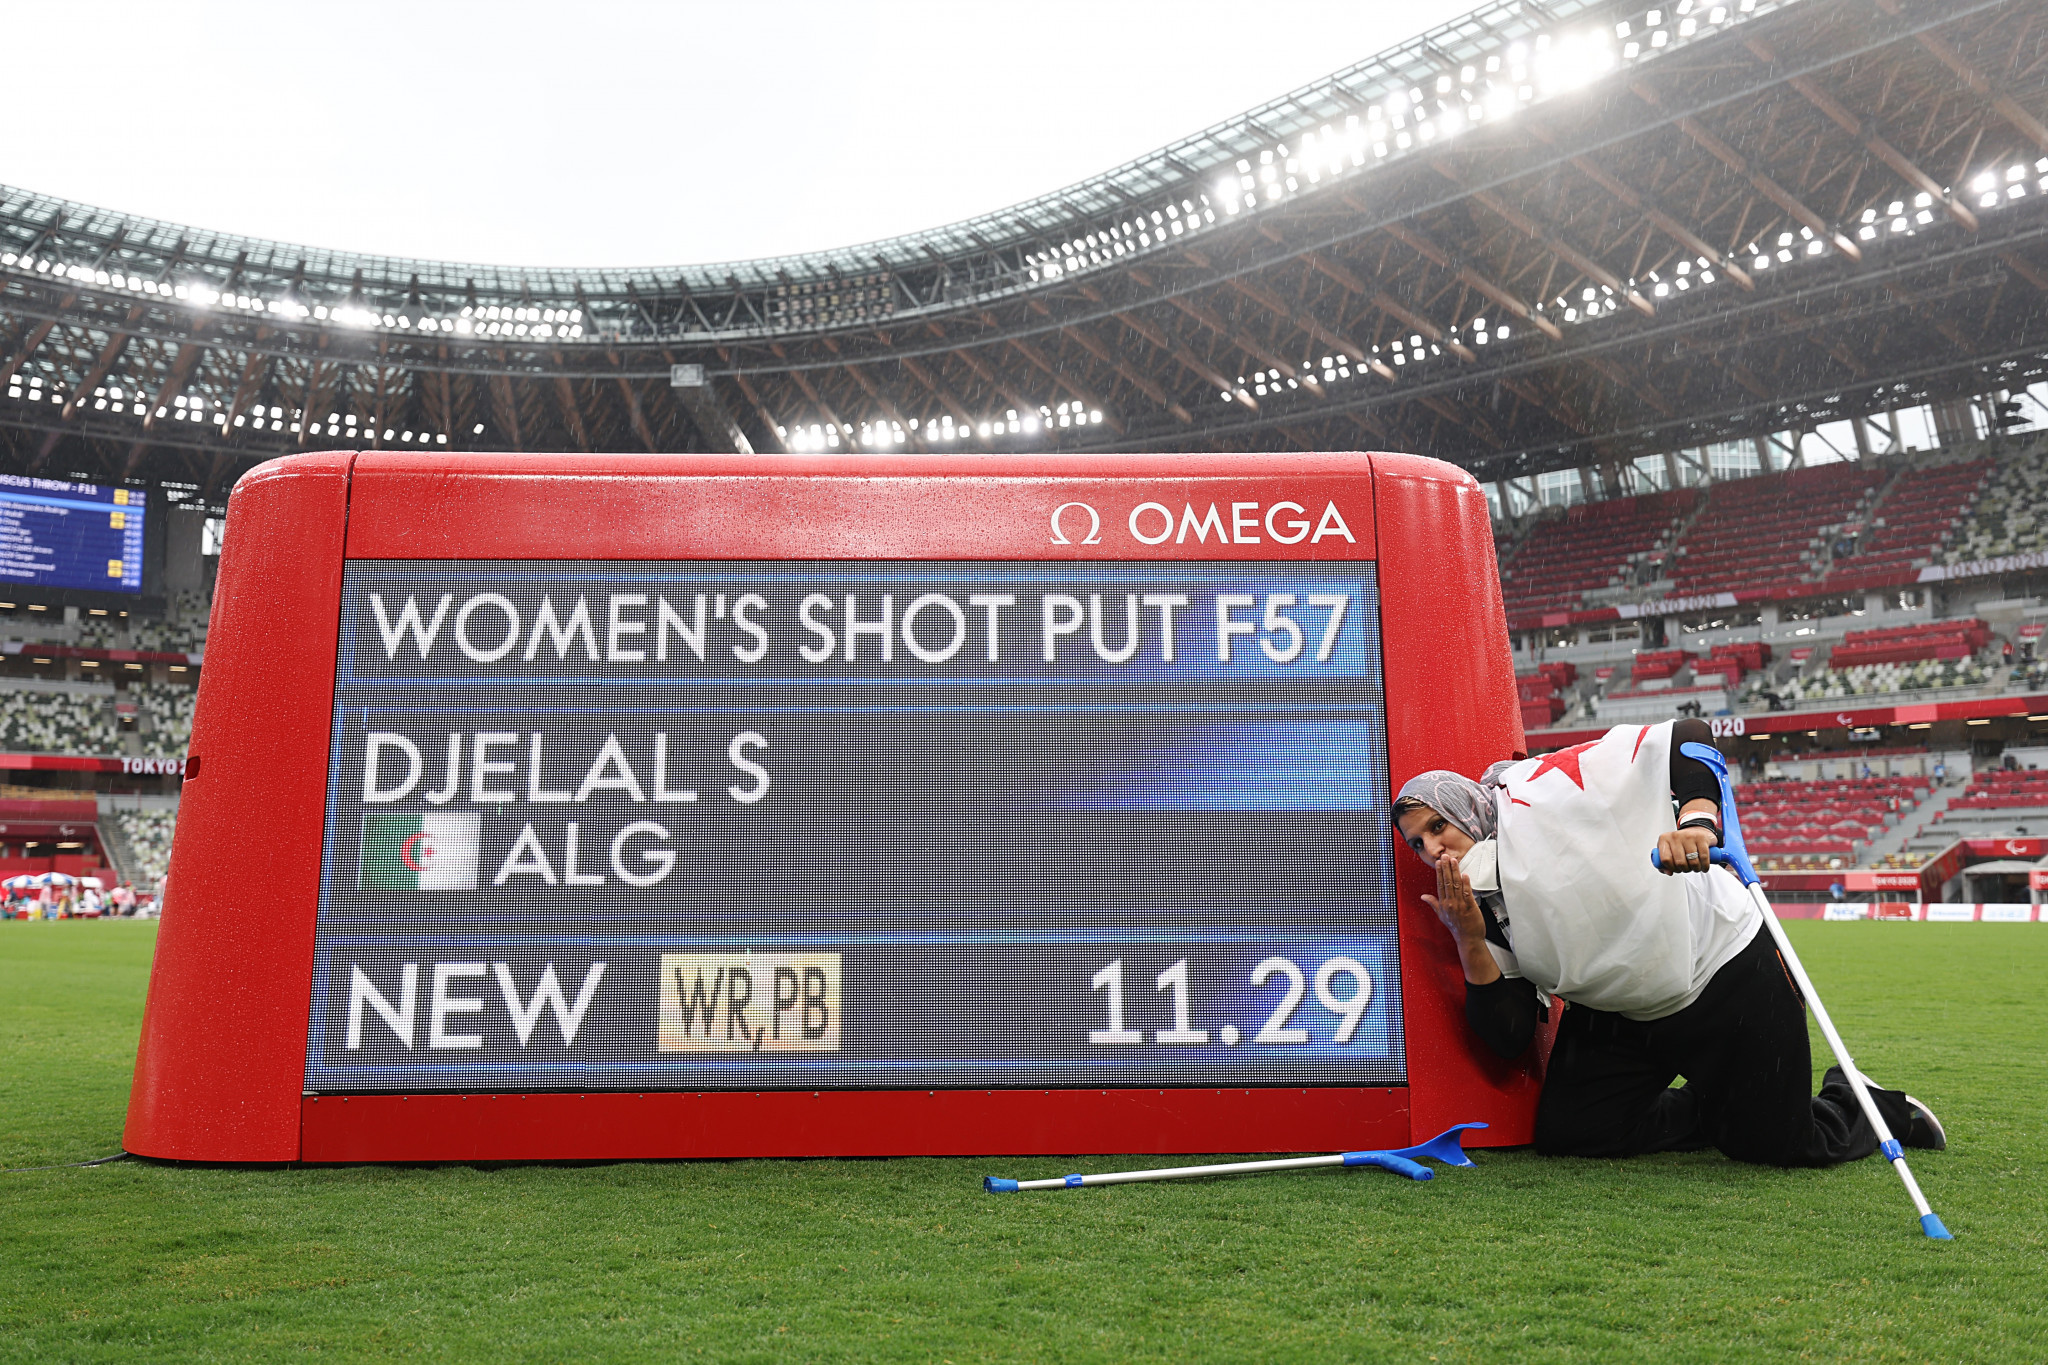 Safia Djelal registered a world record to win the women's F57 shot put crown ©Getty Images